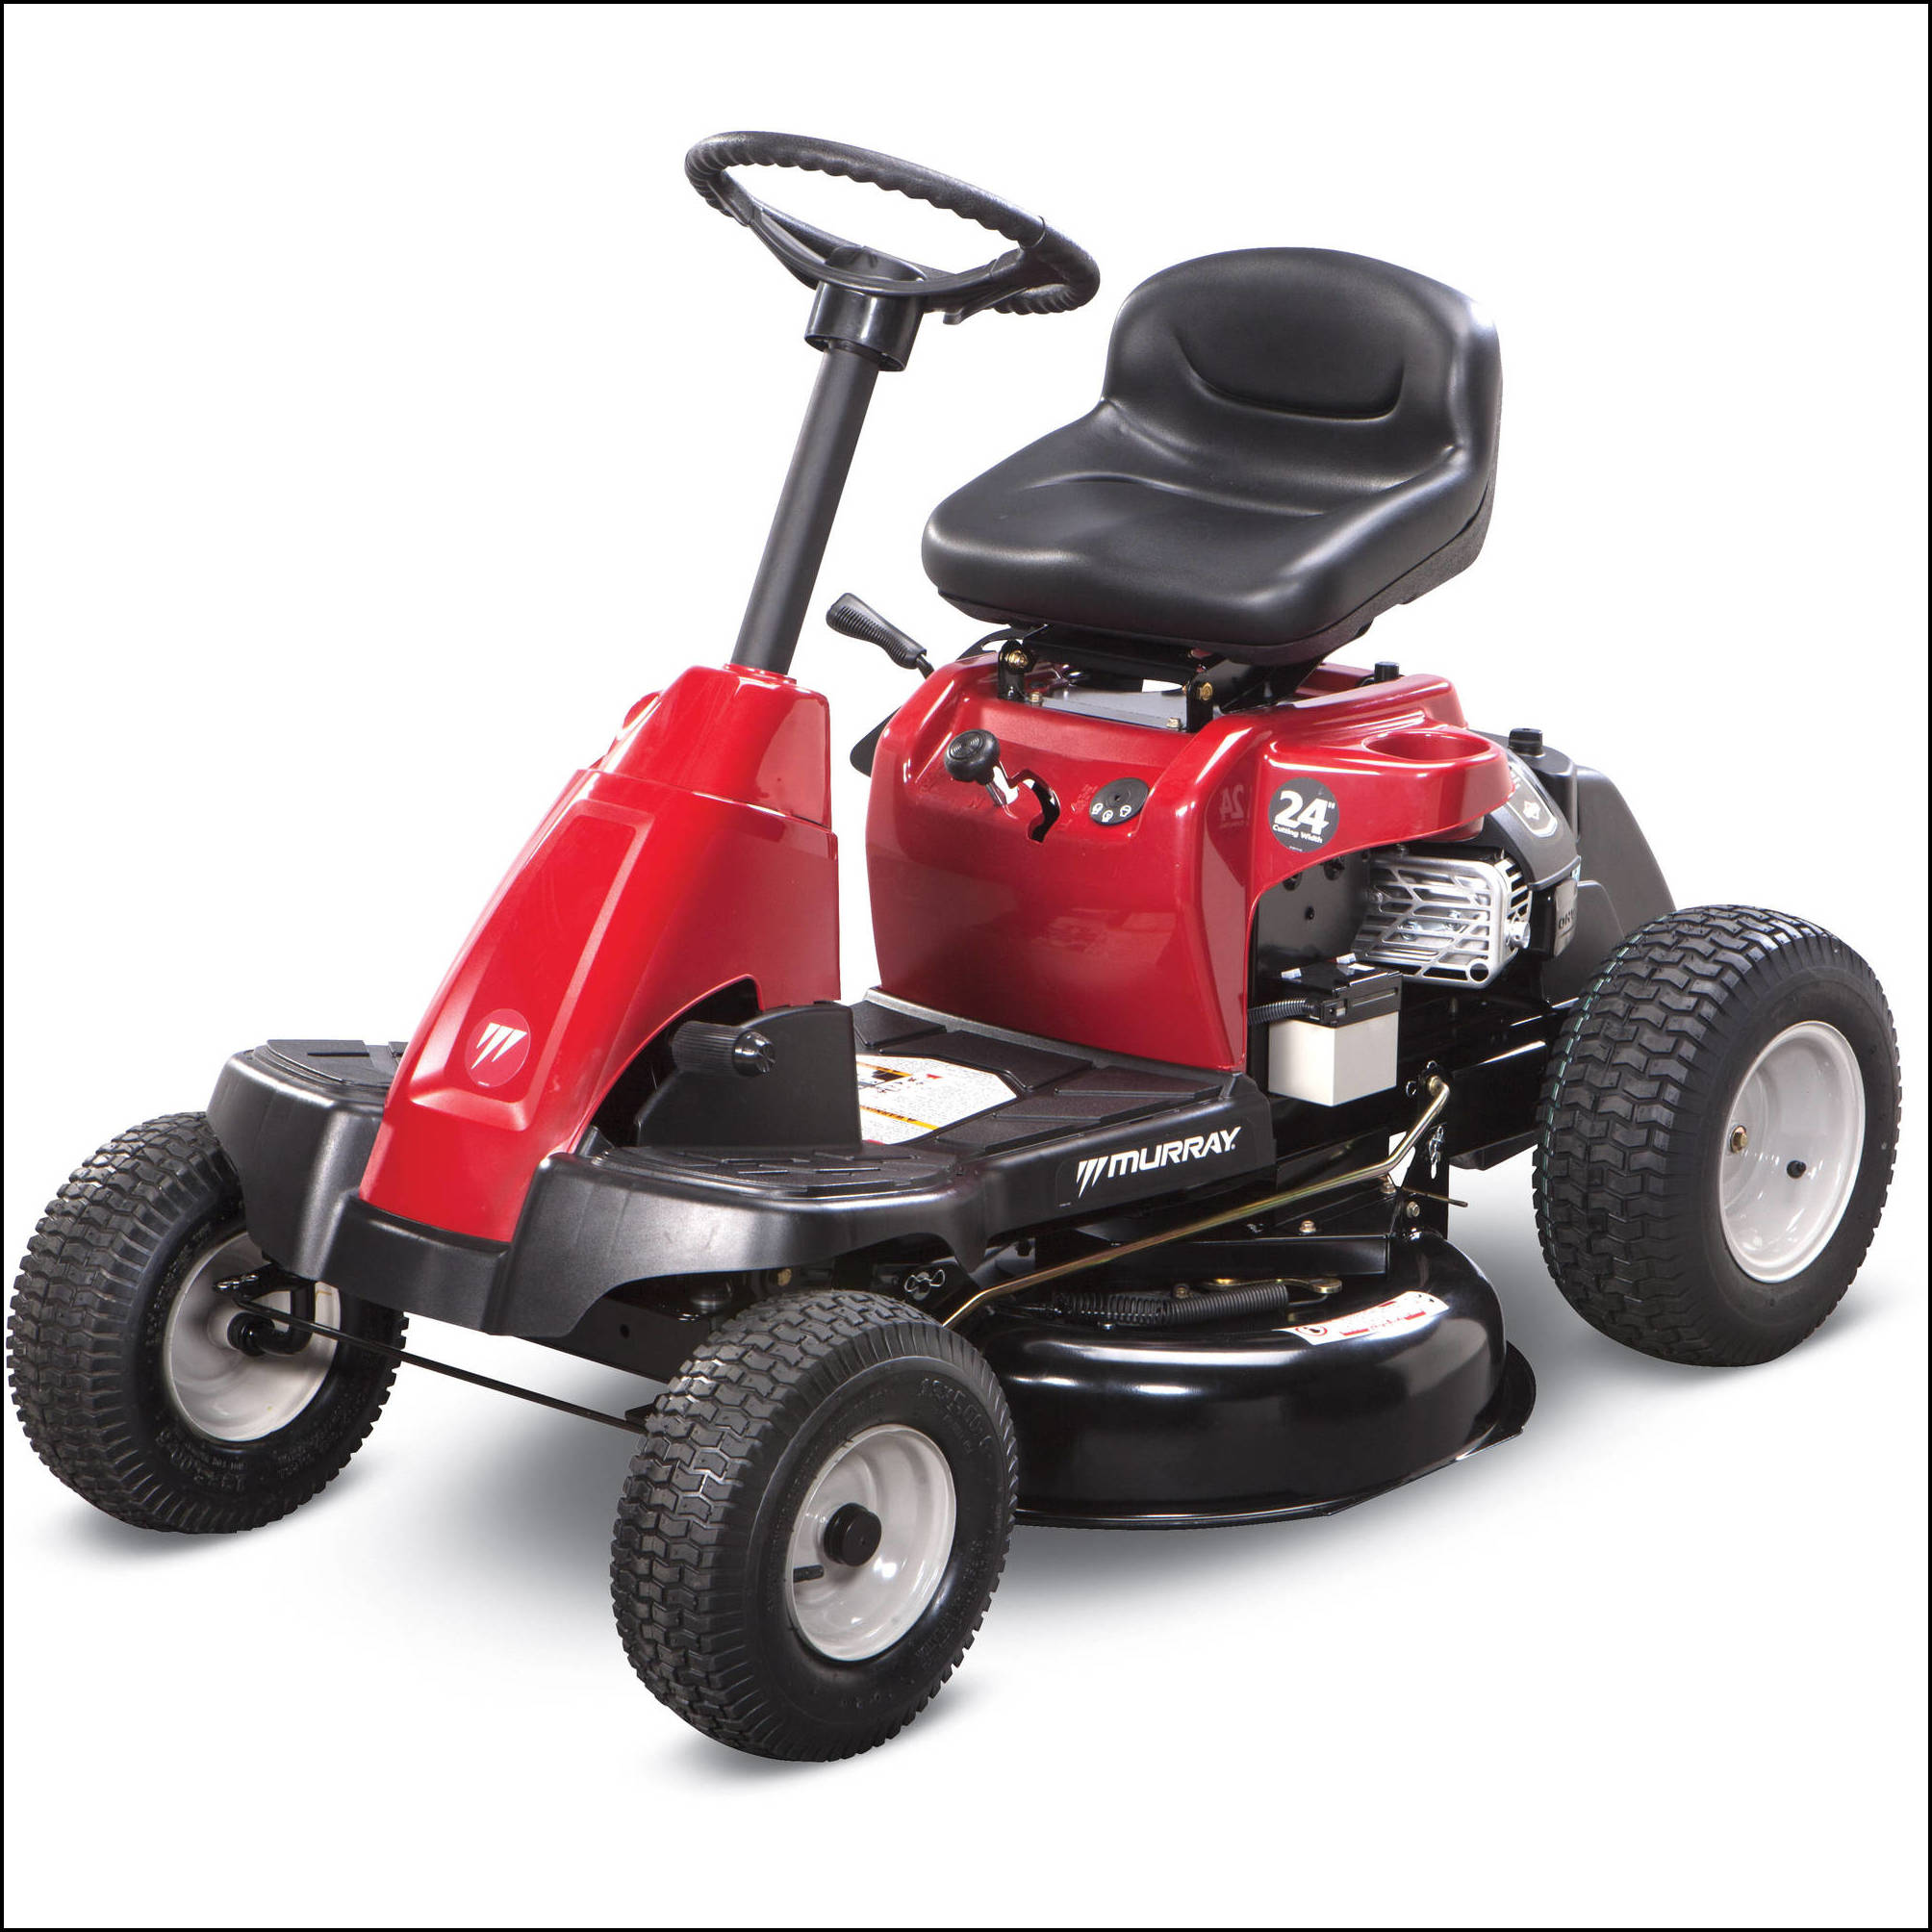 Discount Riding Lawn Mowers The Garden